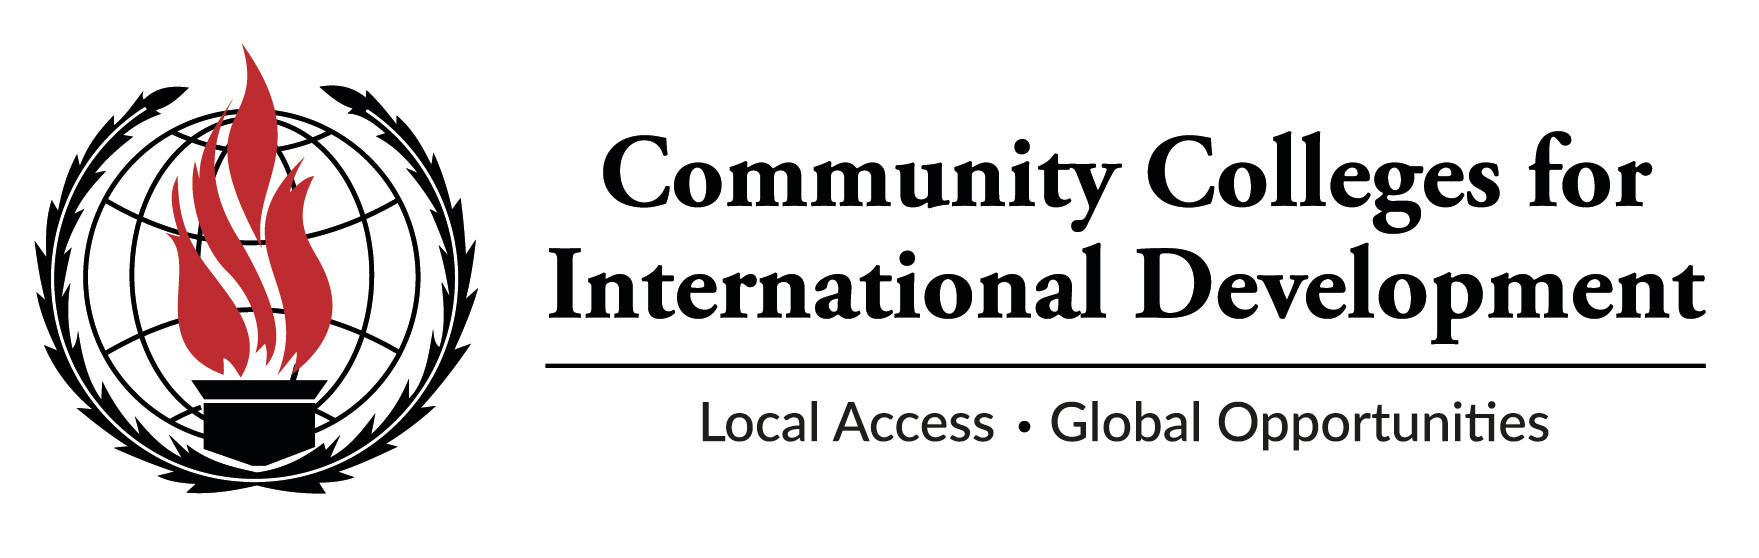 Community Colleges for International Development | CCID